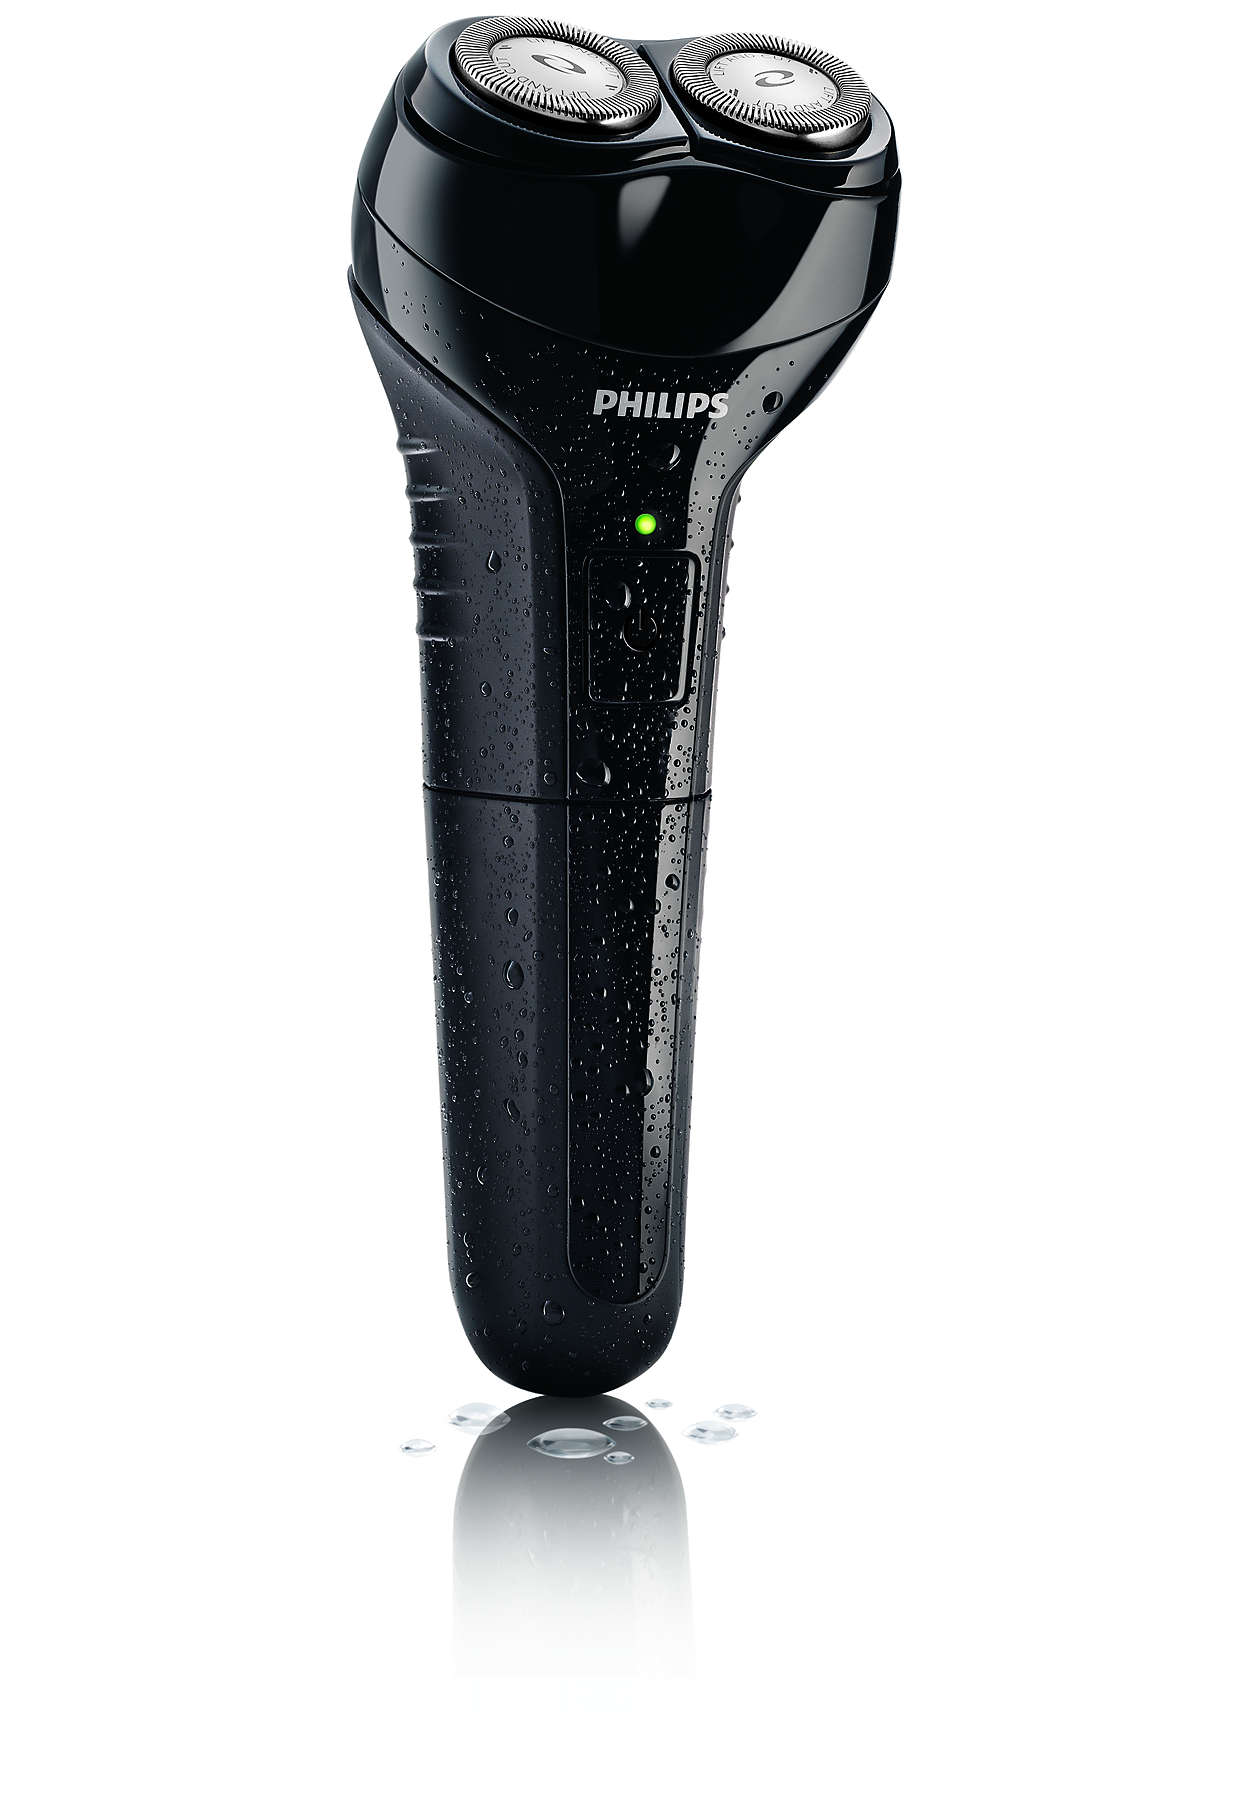 Philips HQ912 electric shaver